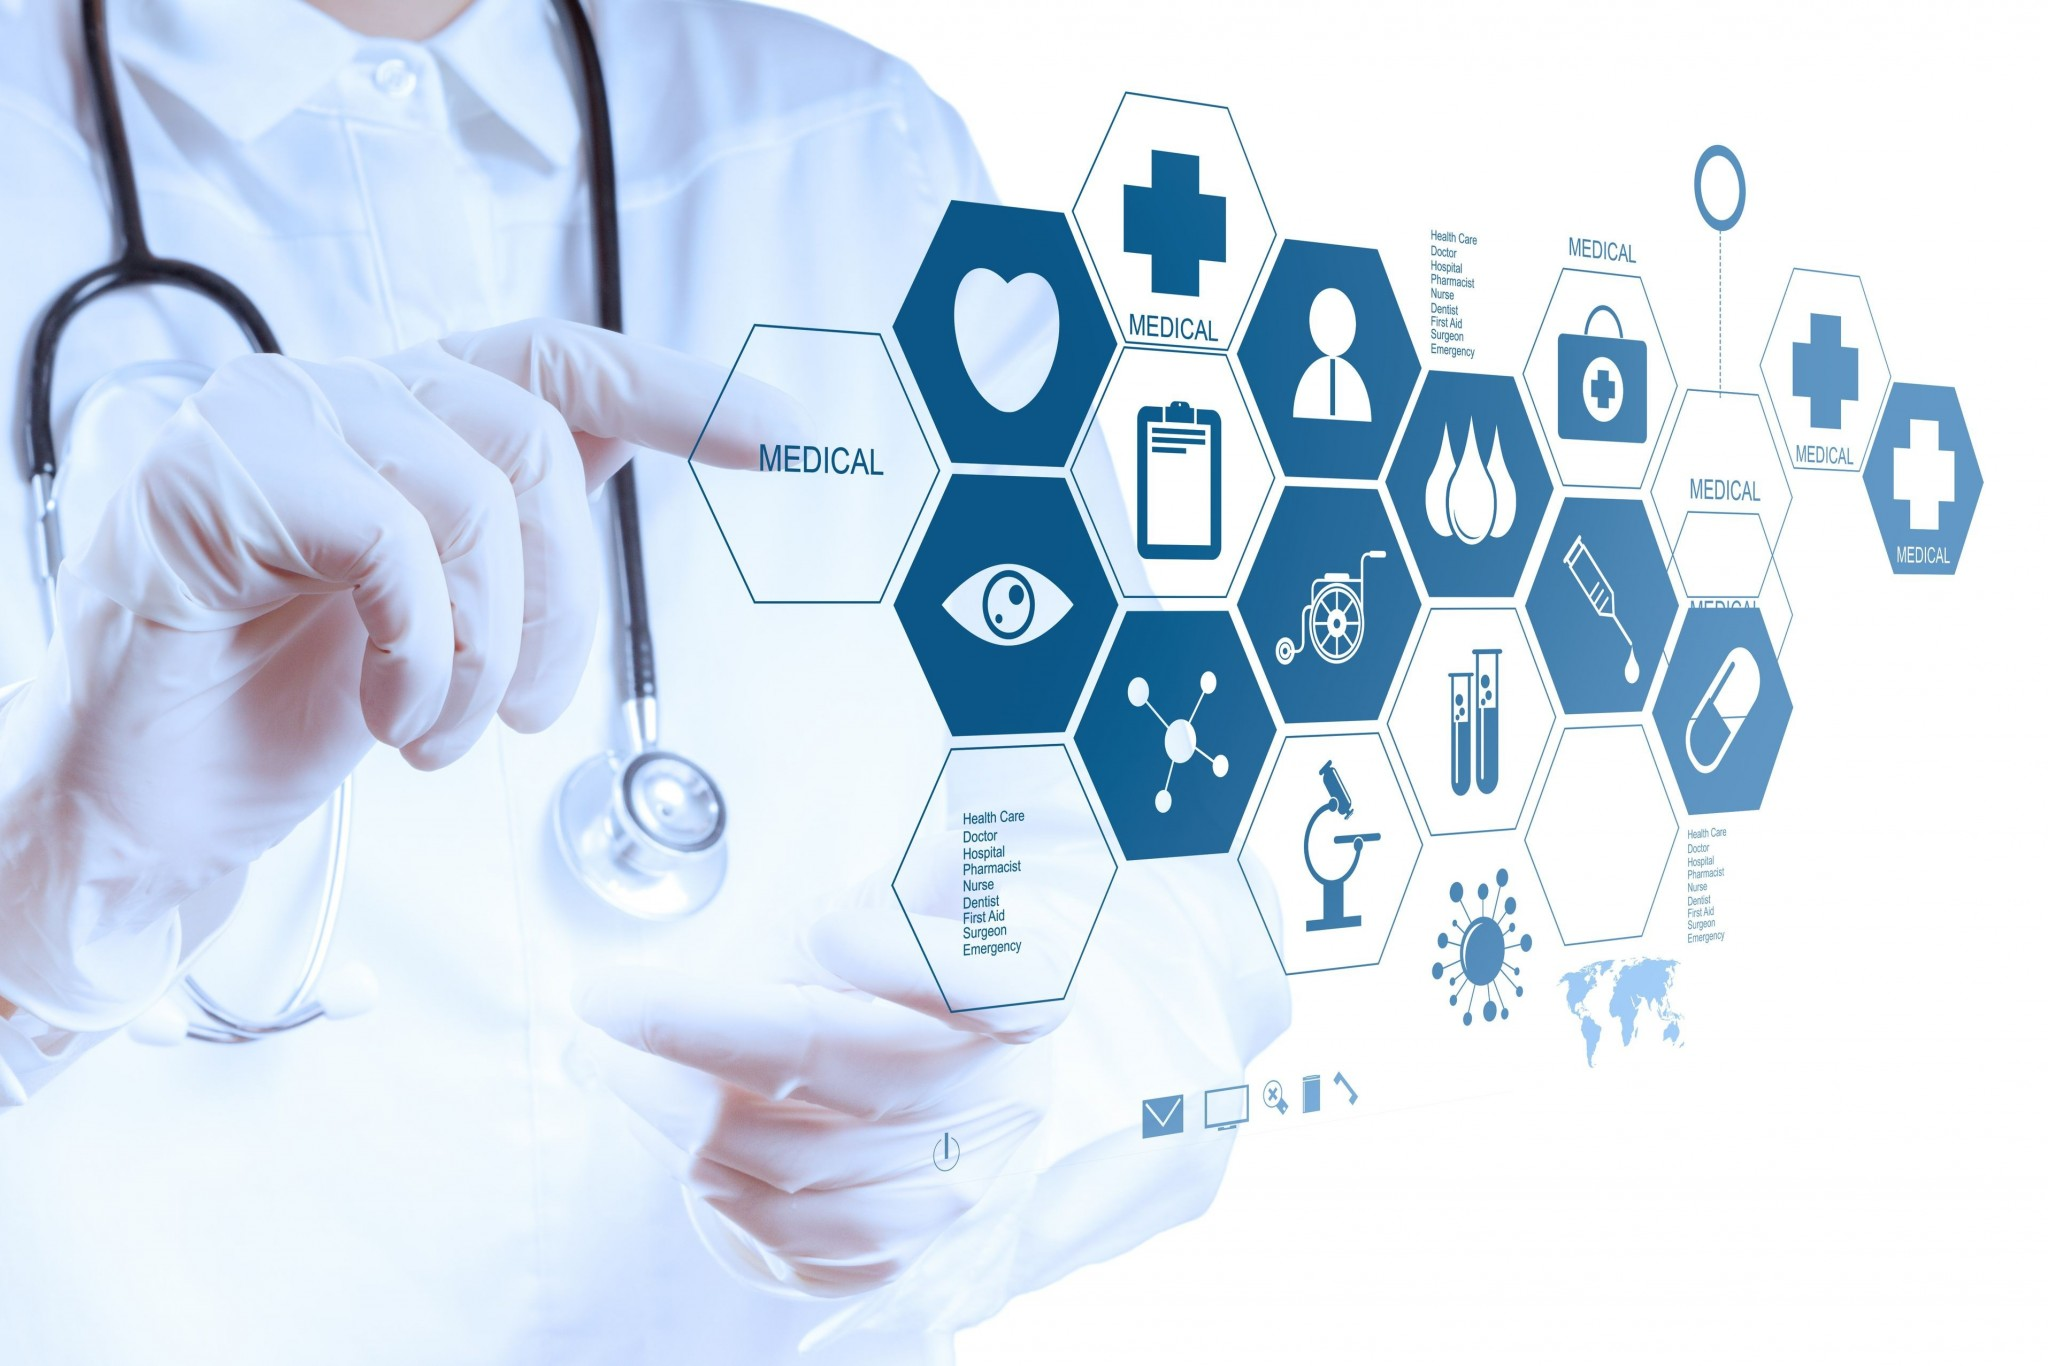 use of technology in medicine